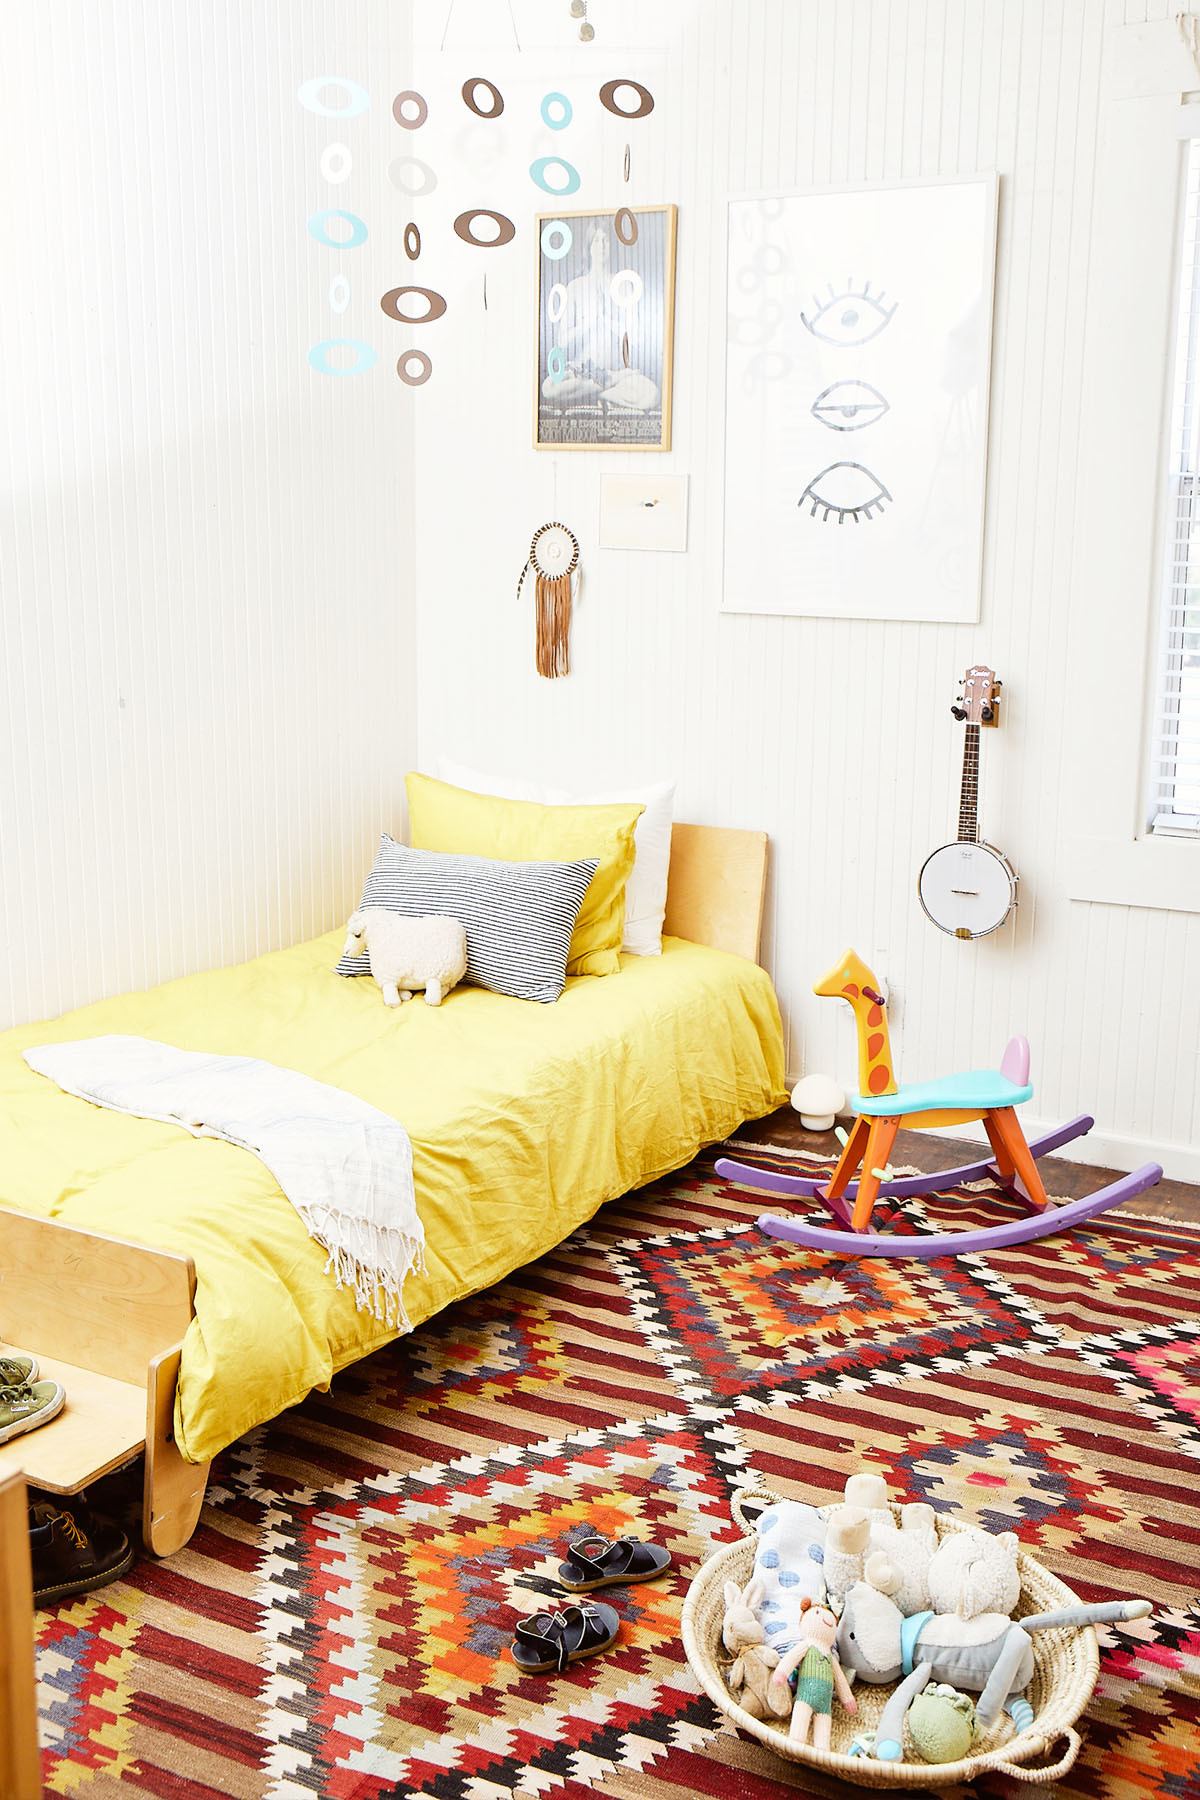 Felix's bedroom is decorated with a blend of accessible finds and family treasures, dating back decades.Craigslist Bed |H&M Bedding | Vintage Turkish Rug | Vintage Mobile | Vintage Artwork | Vintage Rocking Horse | Vintage Poster.